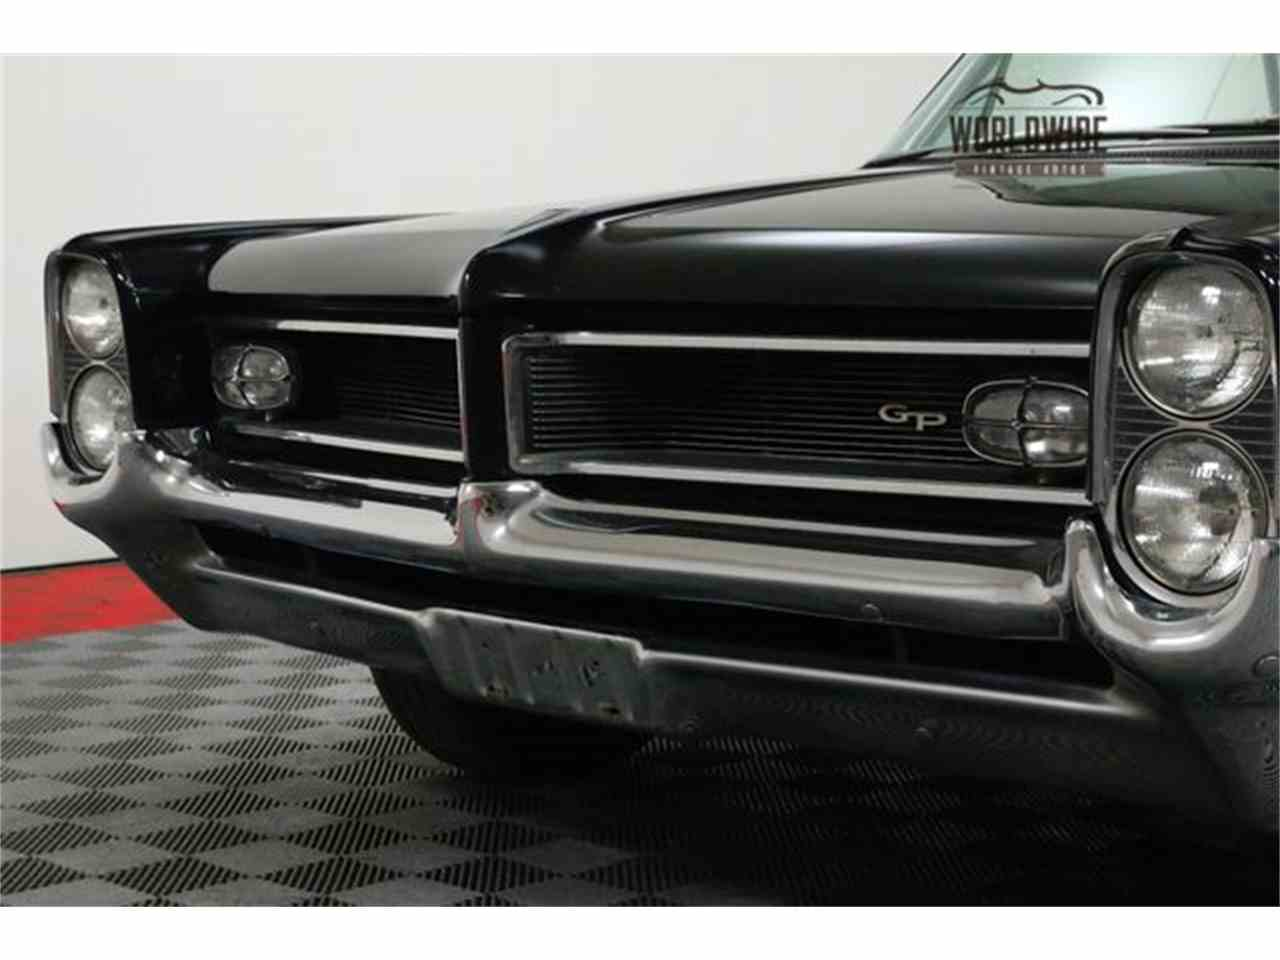 Large Picture of '64 Pontiac Grand Prix - $19,900.00 Offered by Worldwide Vintage Autos - MGJE